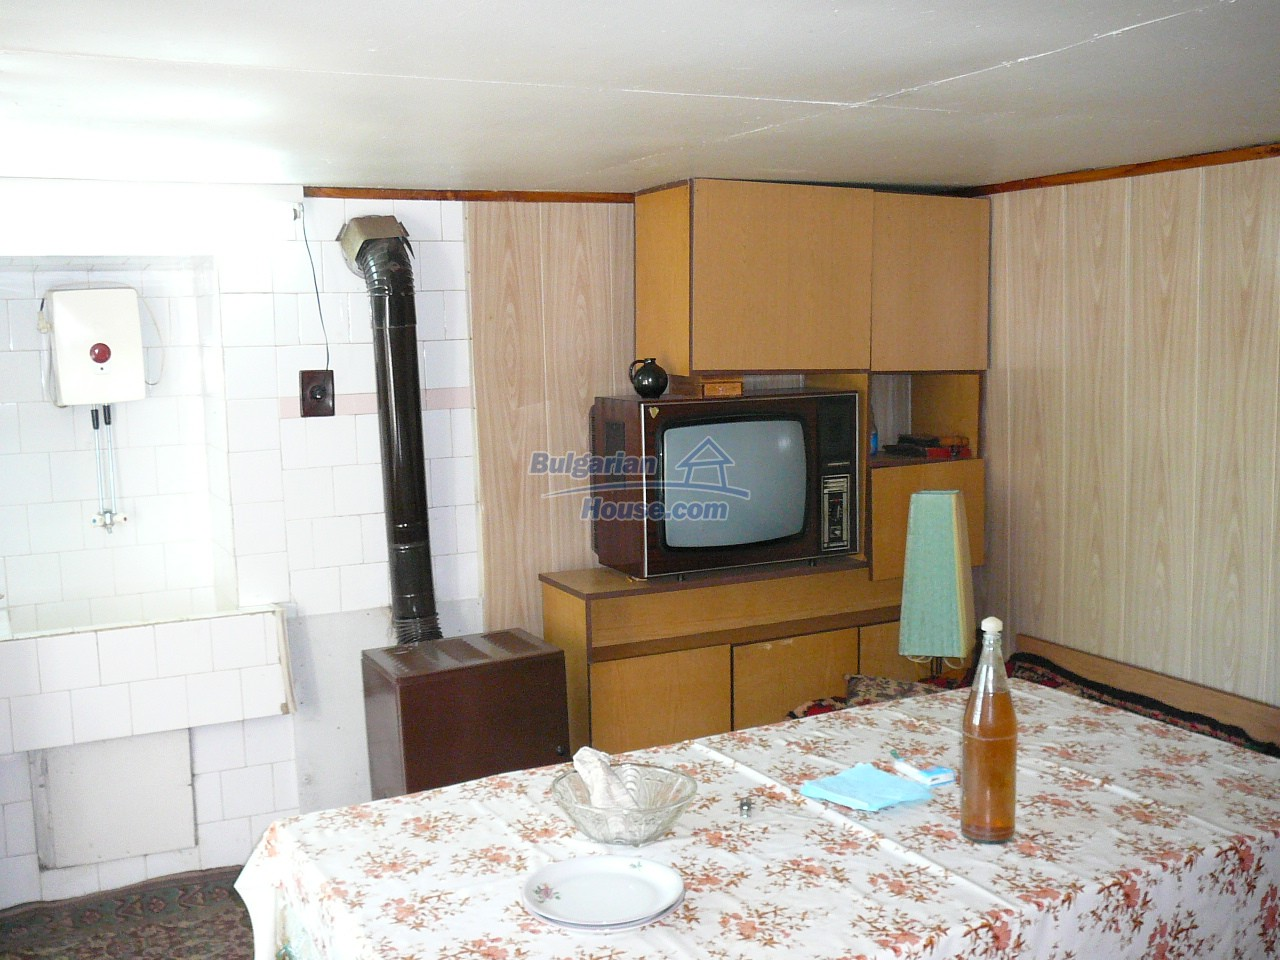 12527:8 - House  in good condition Stara Zagora region 55km to Plovdiv